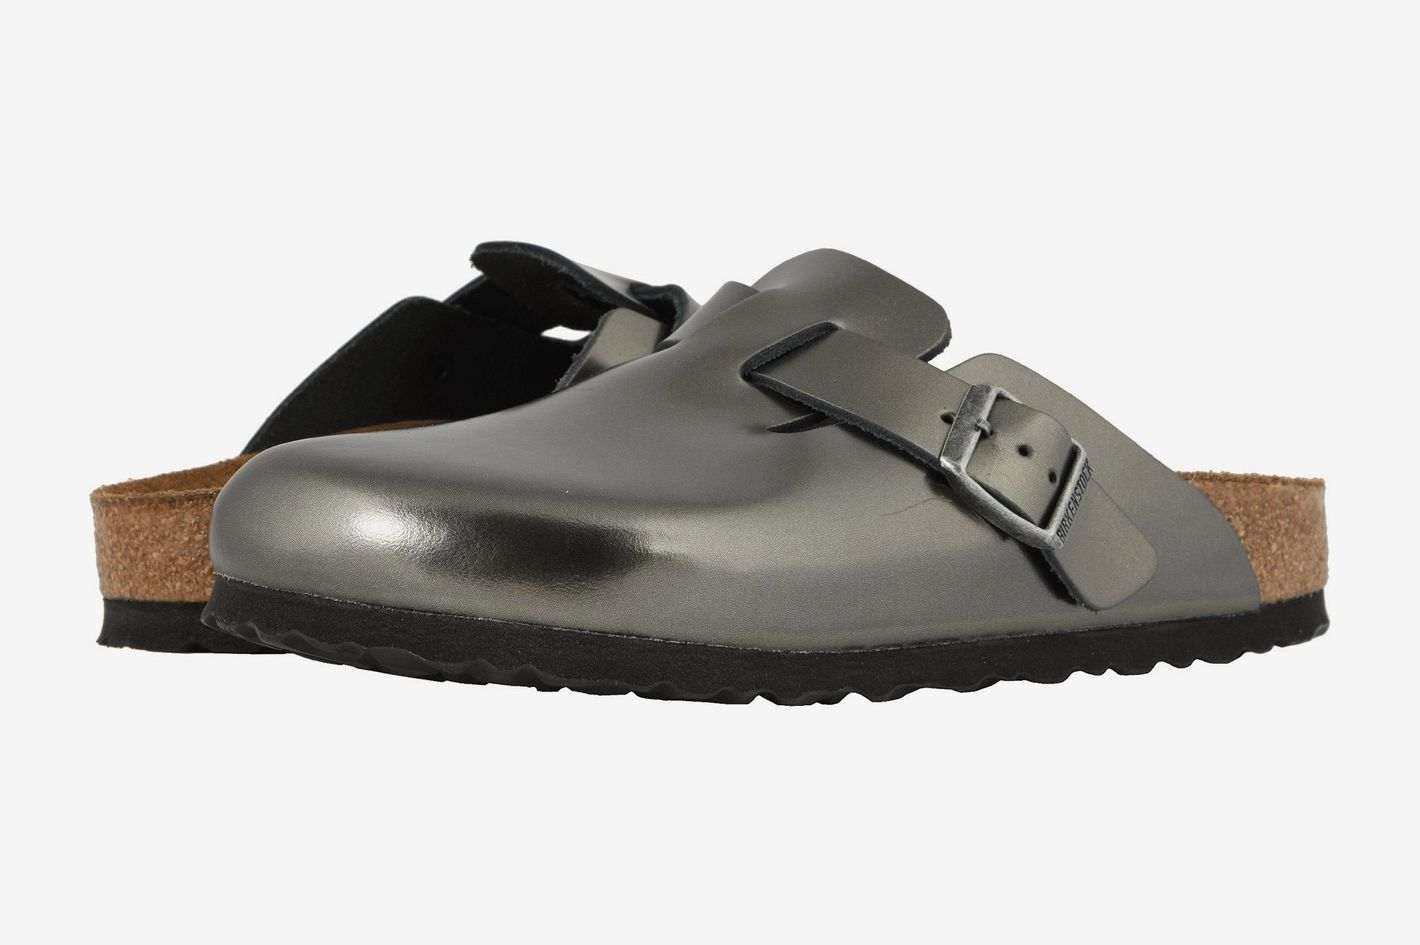 80c0e4dc9ae 27 Birkenstocks for Men and Women 2018